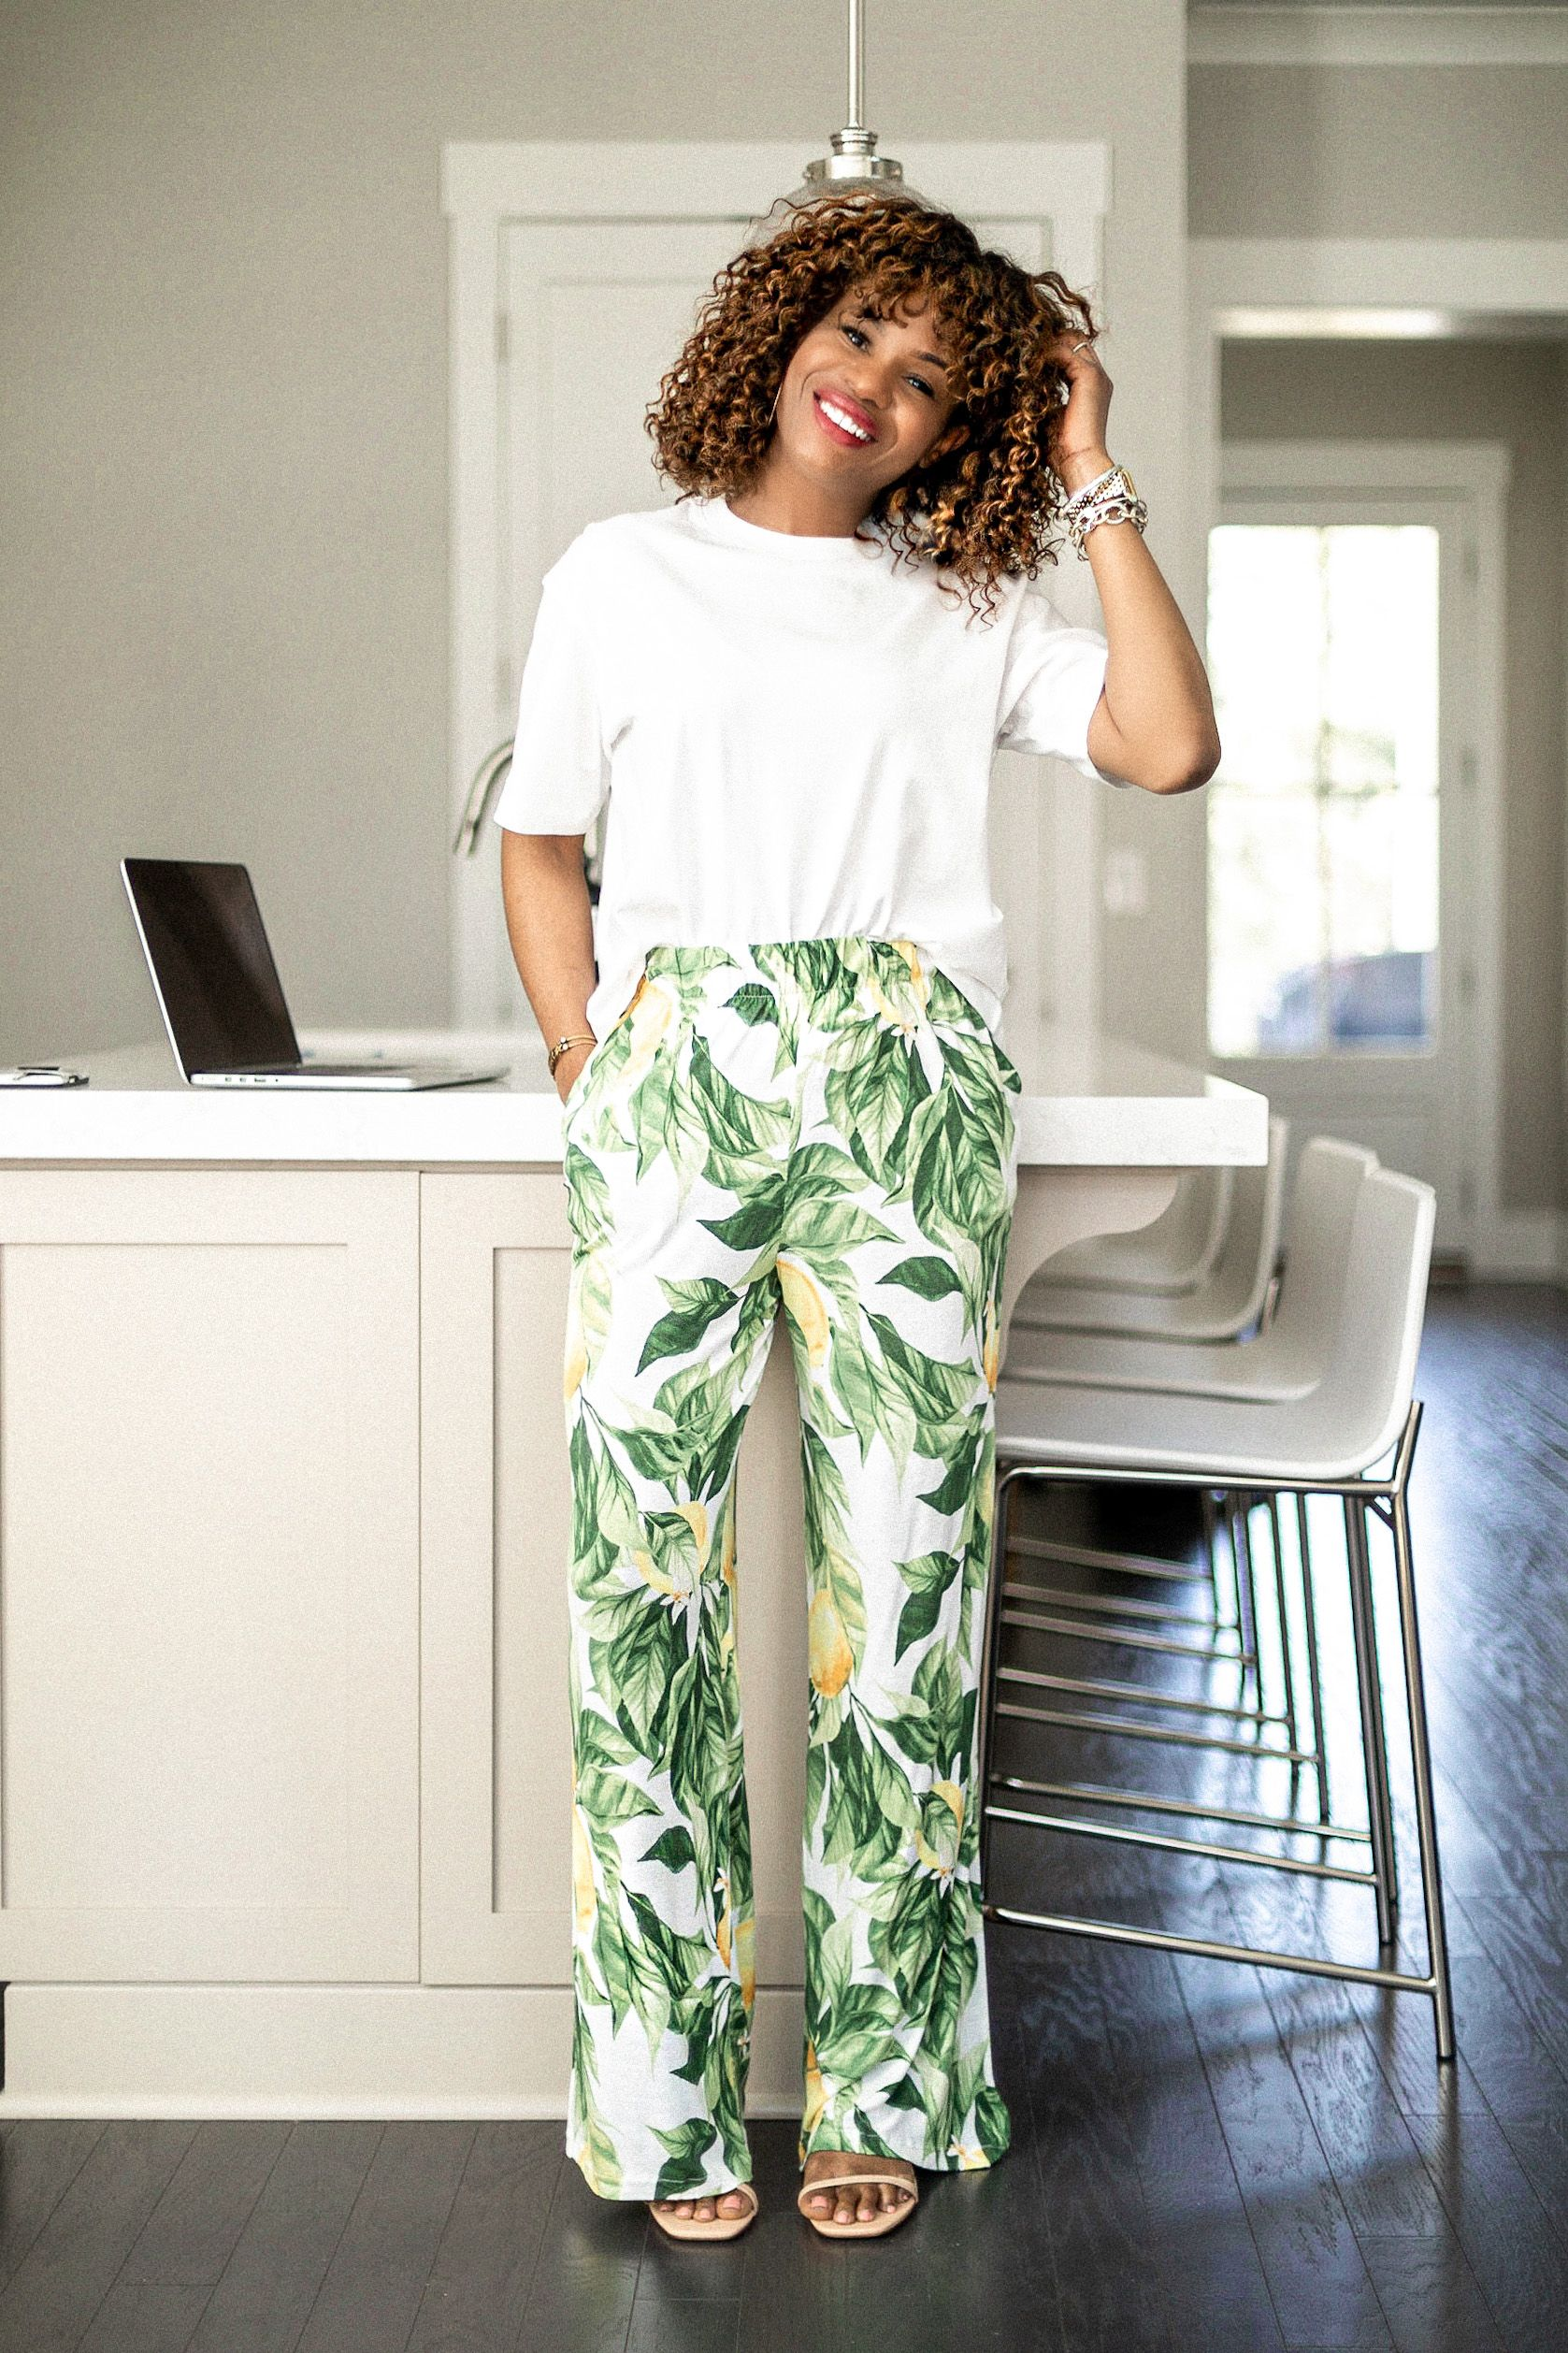 2020 Spring Trends You Can Wear At Home In 2020 Spring Fashion Trends Loungewear Outfits Summer Fashion Trends